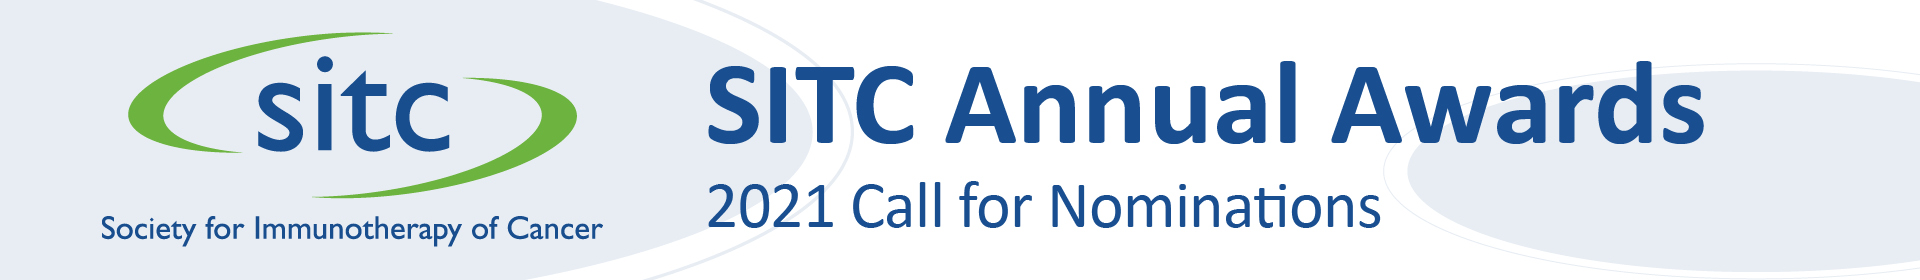 2021 SITC Annual Awards Event Banner